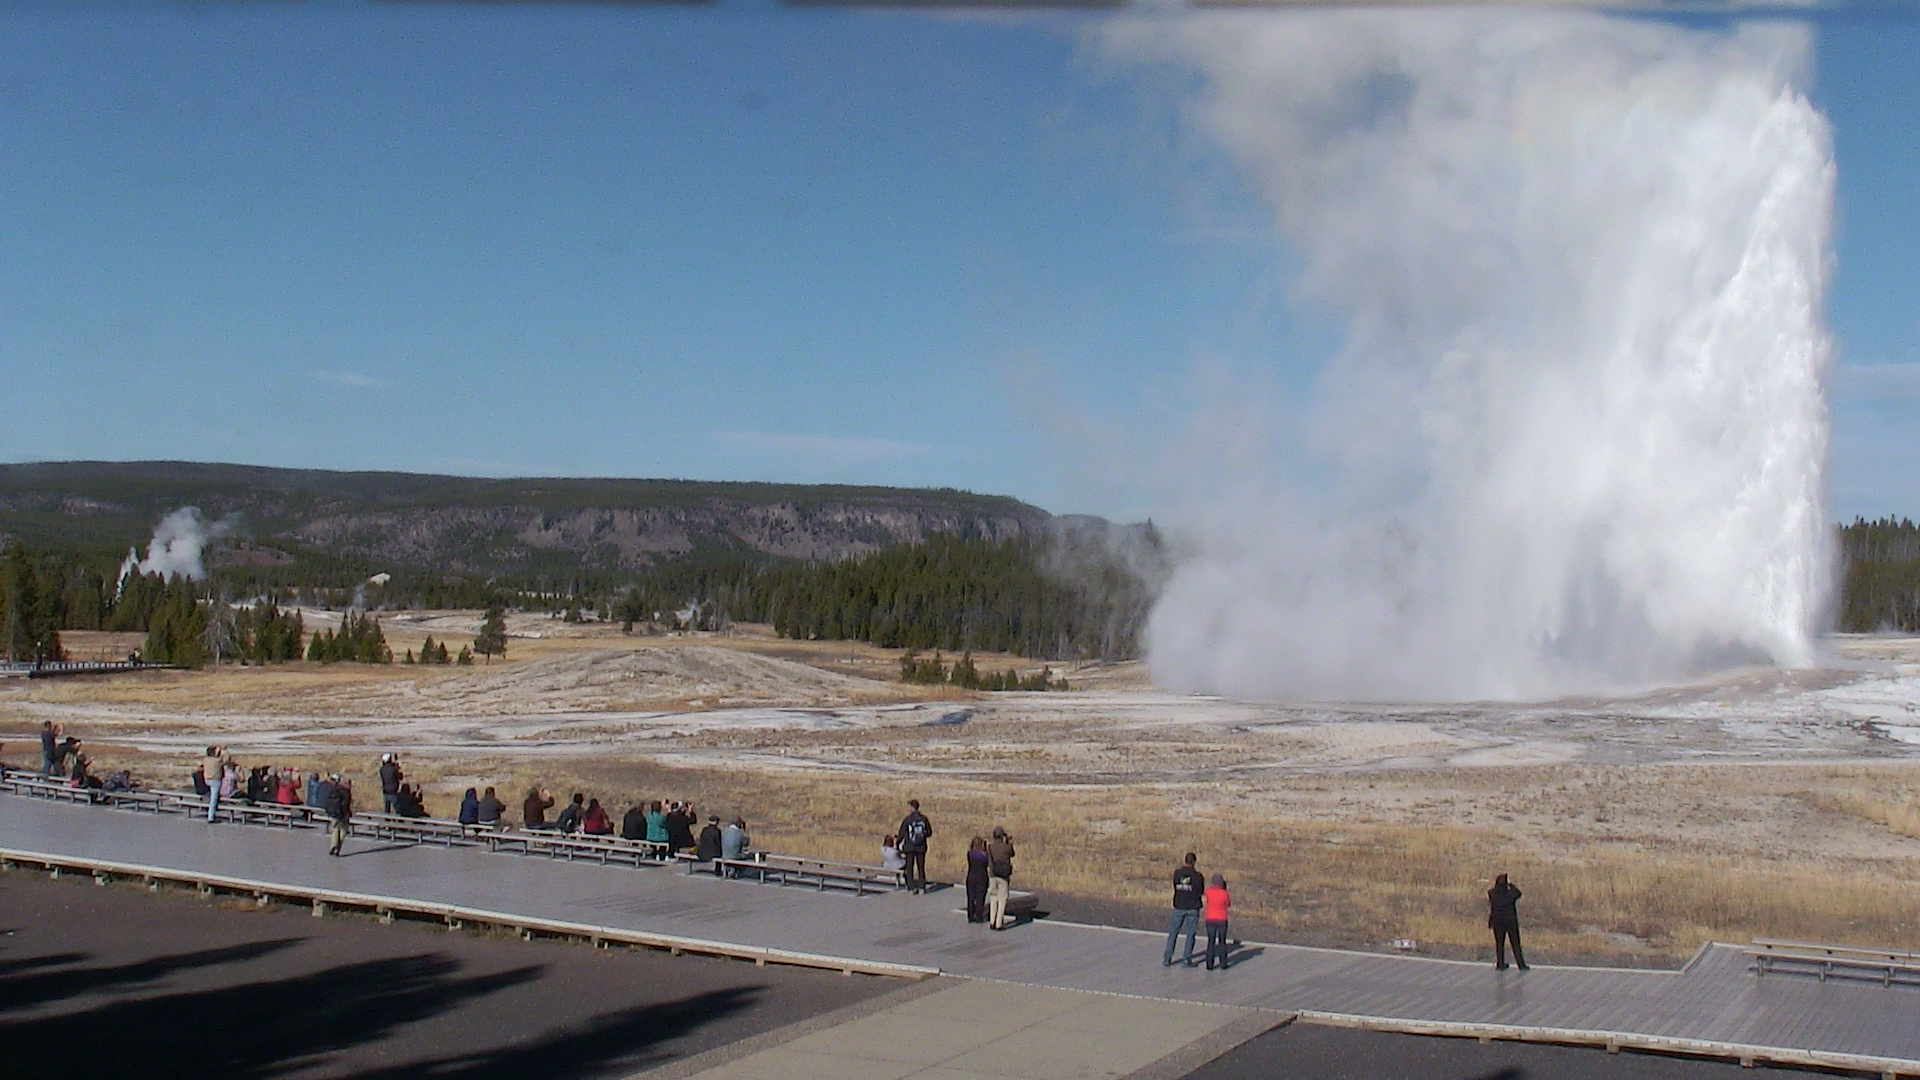 Yellowstone National Park - Old Faithful Geyser - NPS